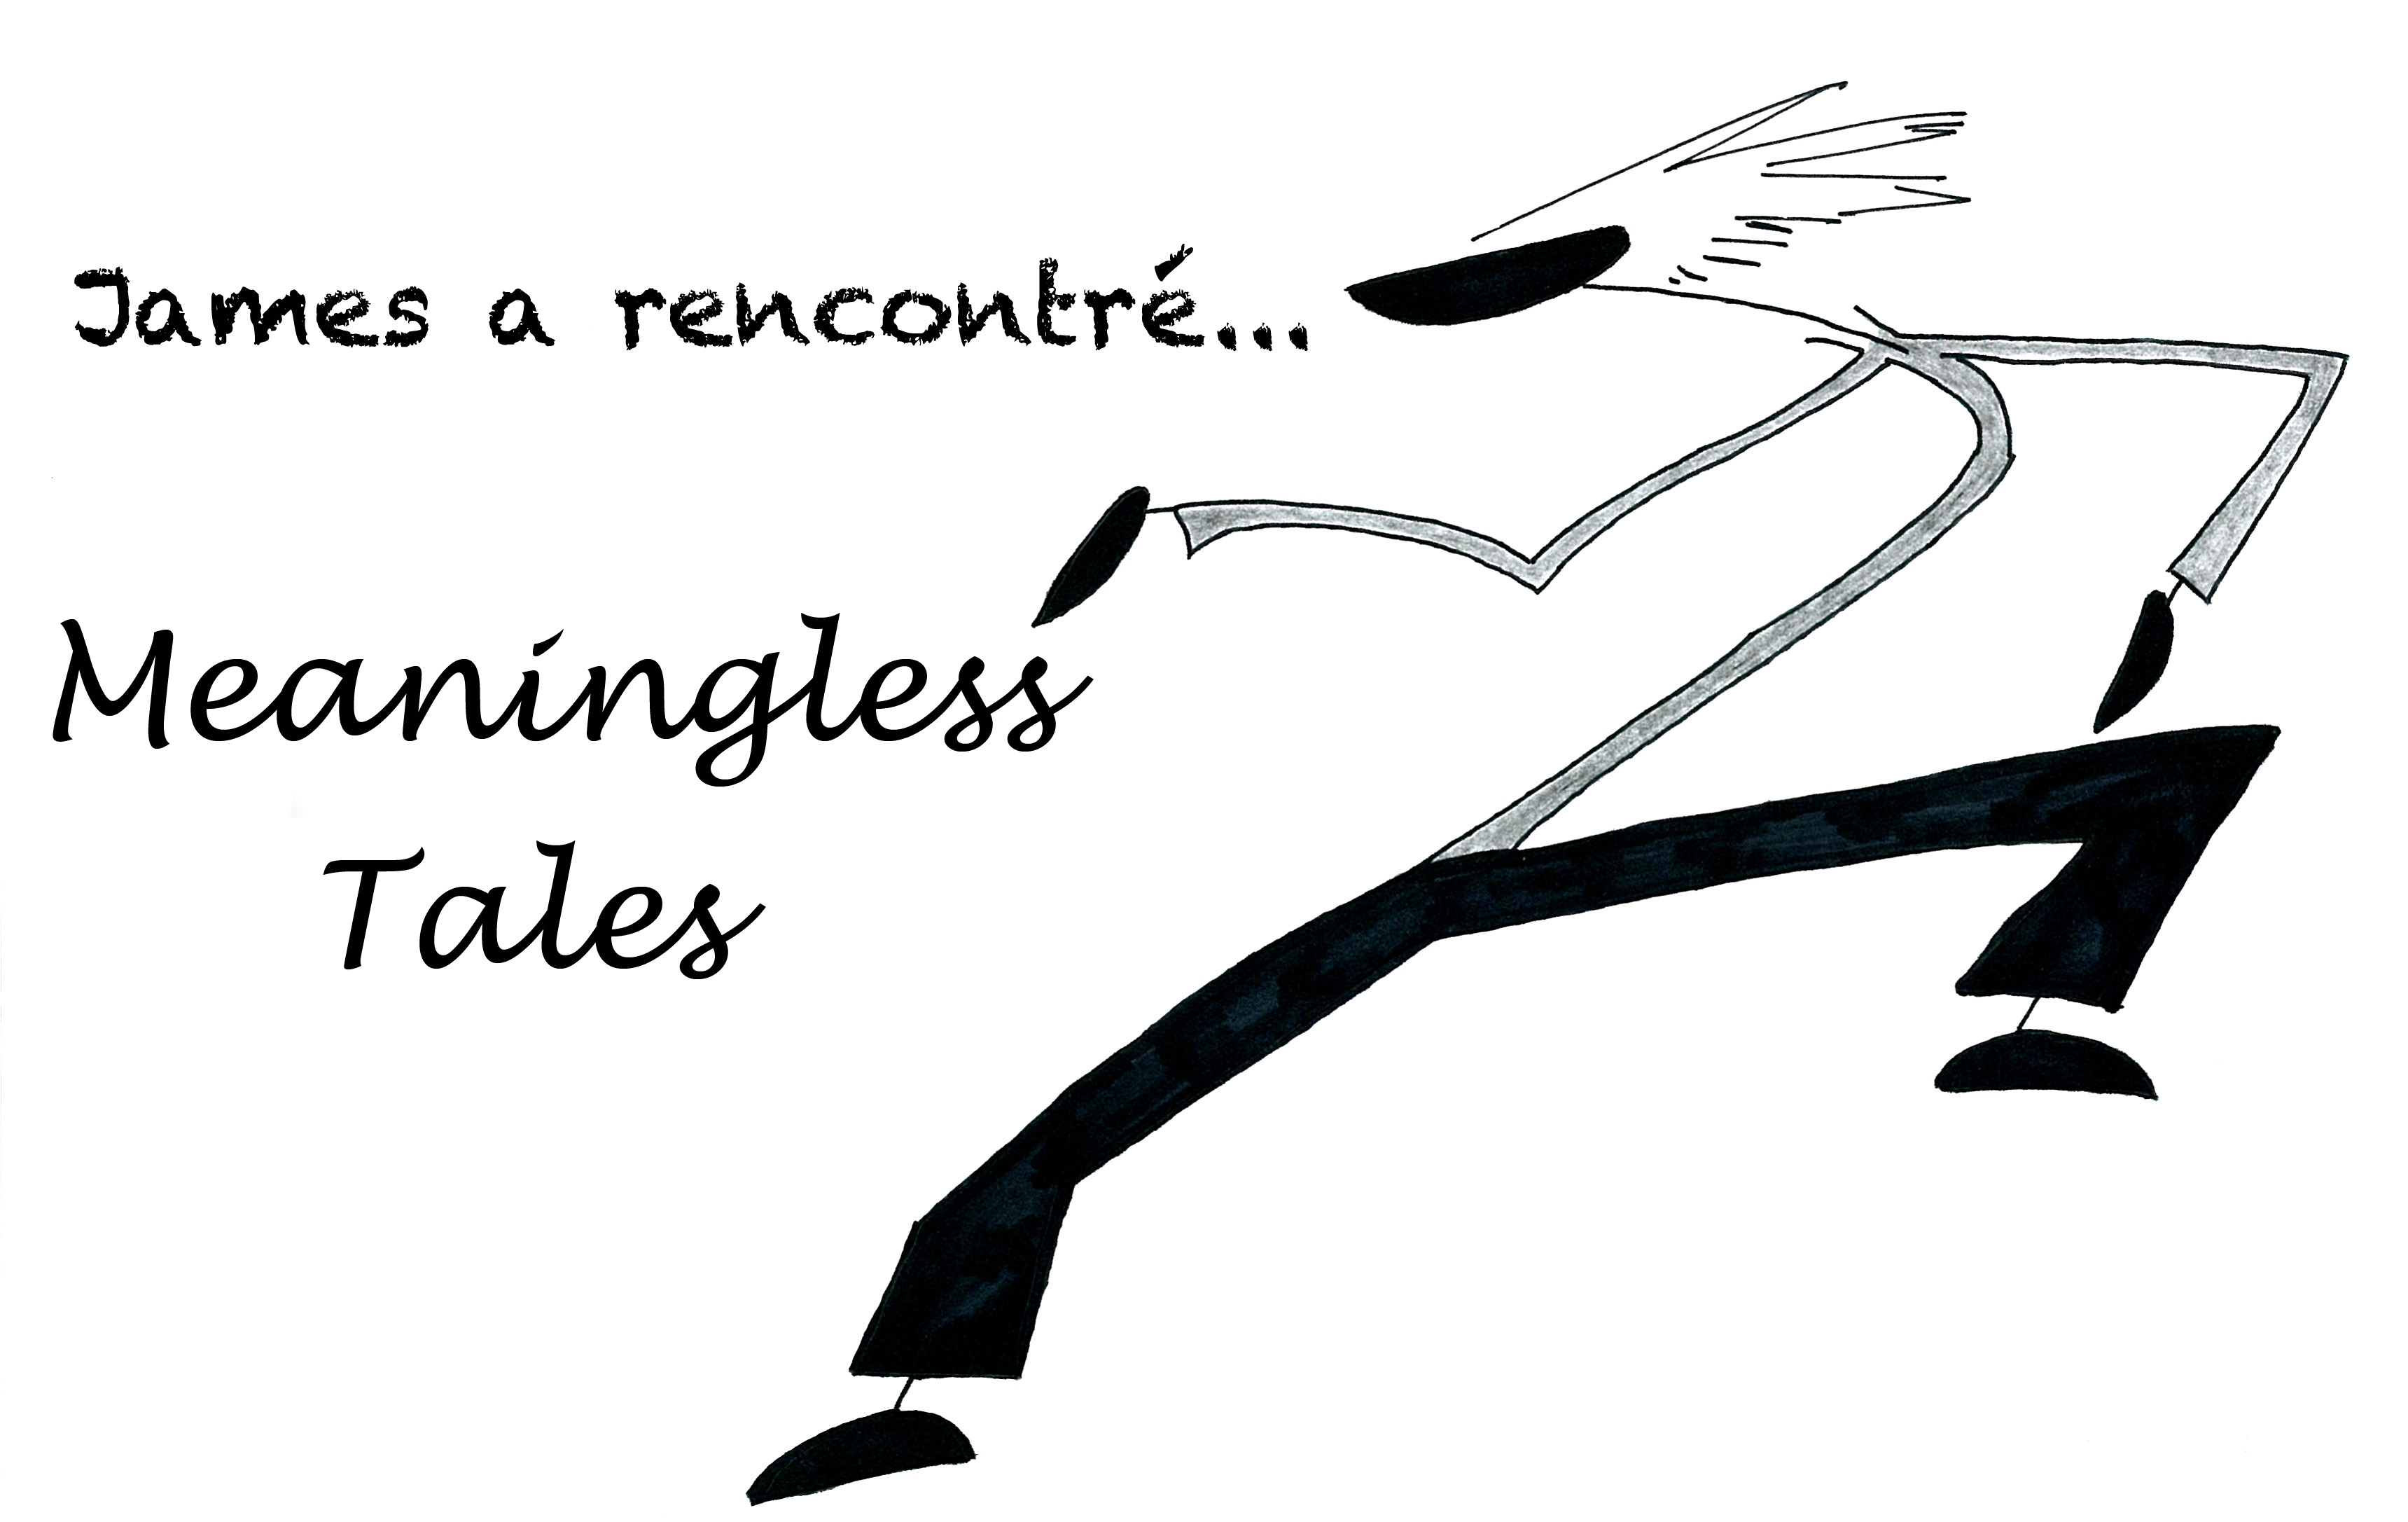 Meaningless Tales, James a rencontré..., contes, décadence, James, les contes insensés, illustration, érotisme, texte, théâtre, poésies, écriture, musique, littérature érotique,